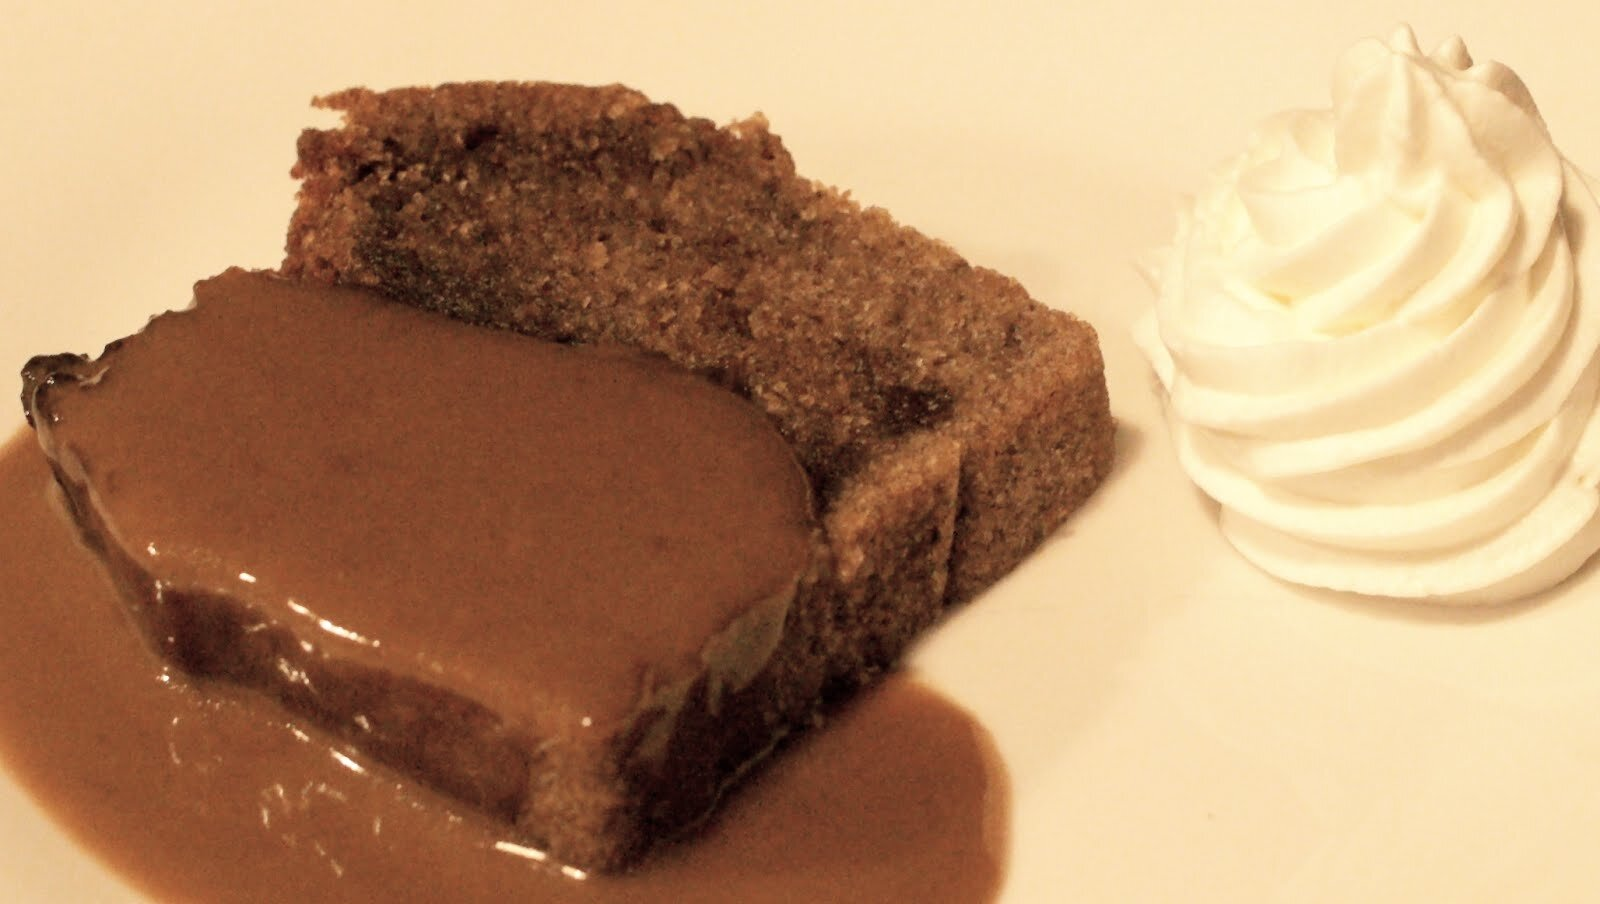 LE STICKY TOFFEE PUDDING AU MUSCOVADO